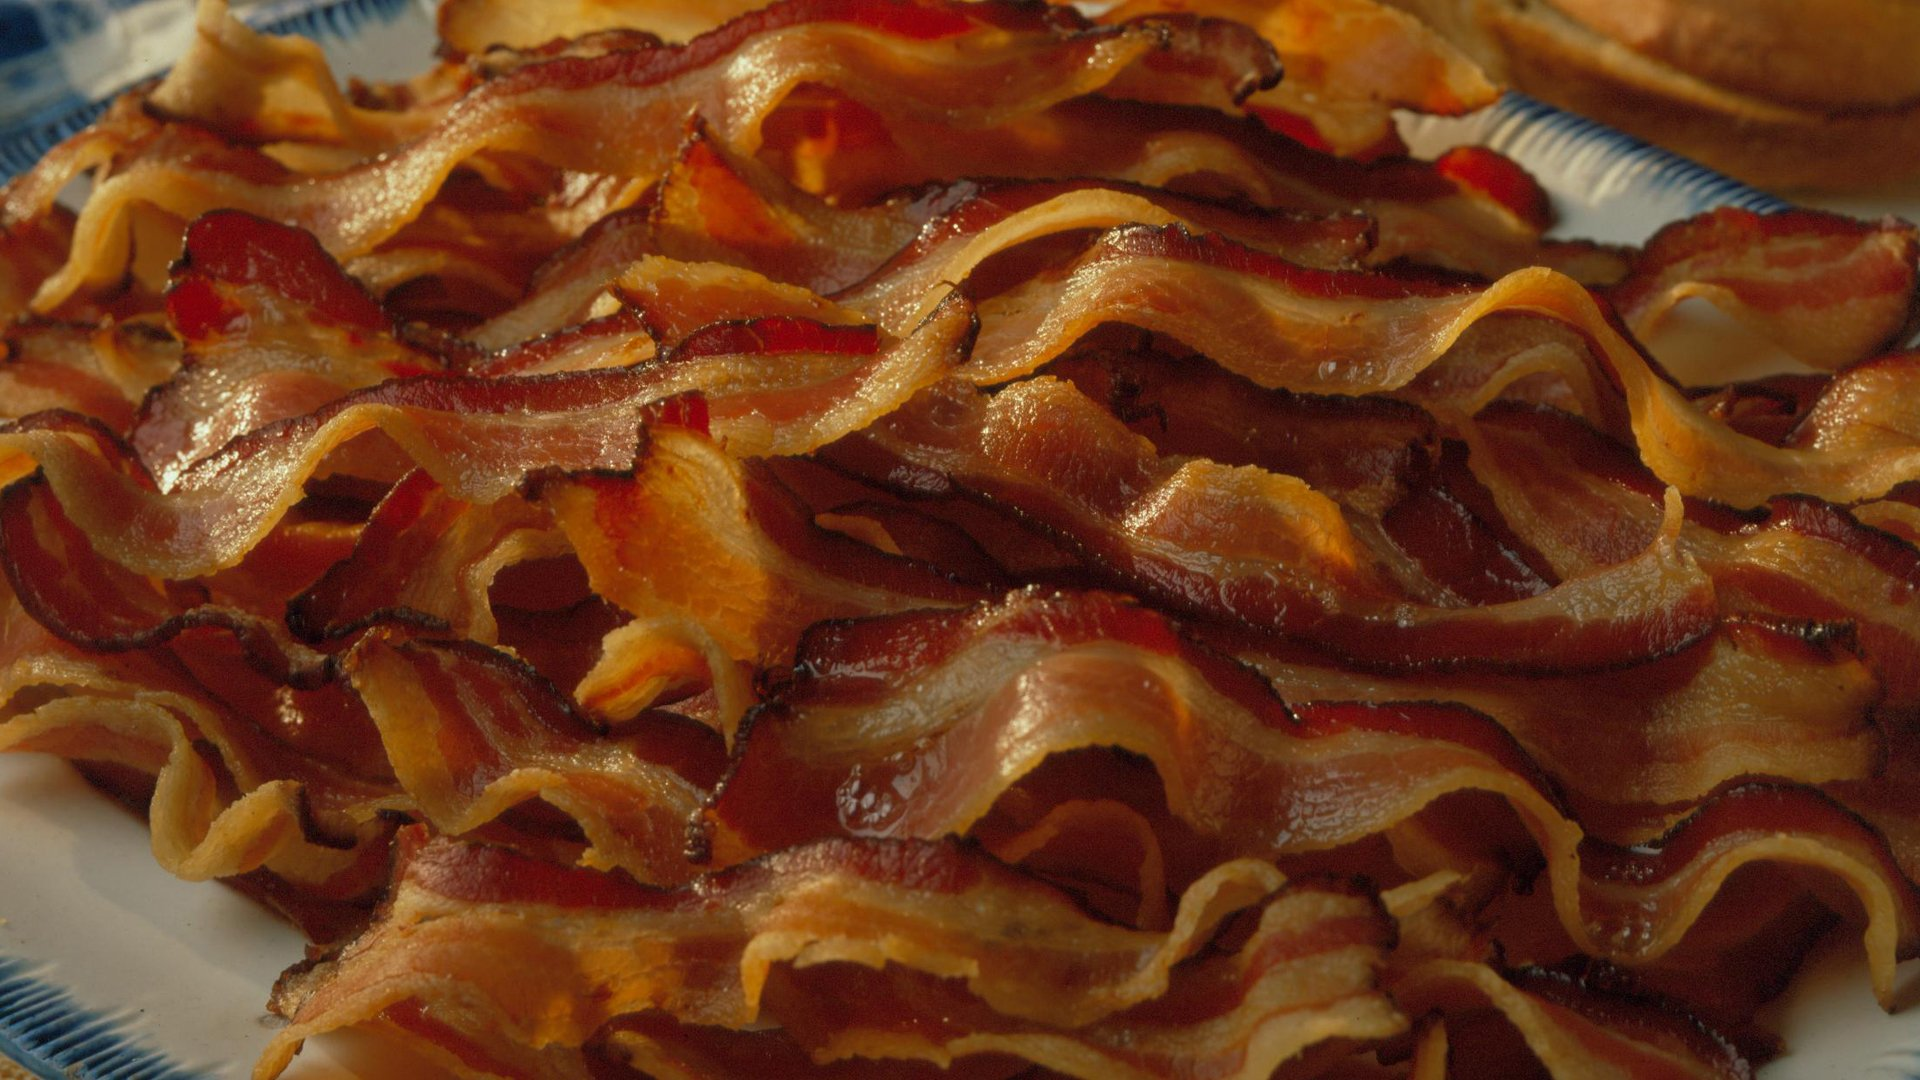 23 Bacon HD Wallpapers